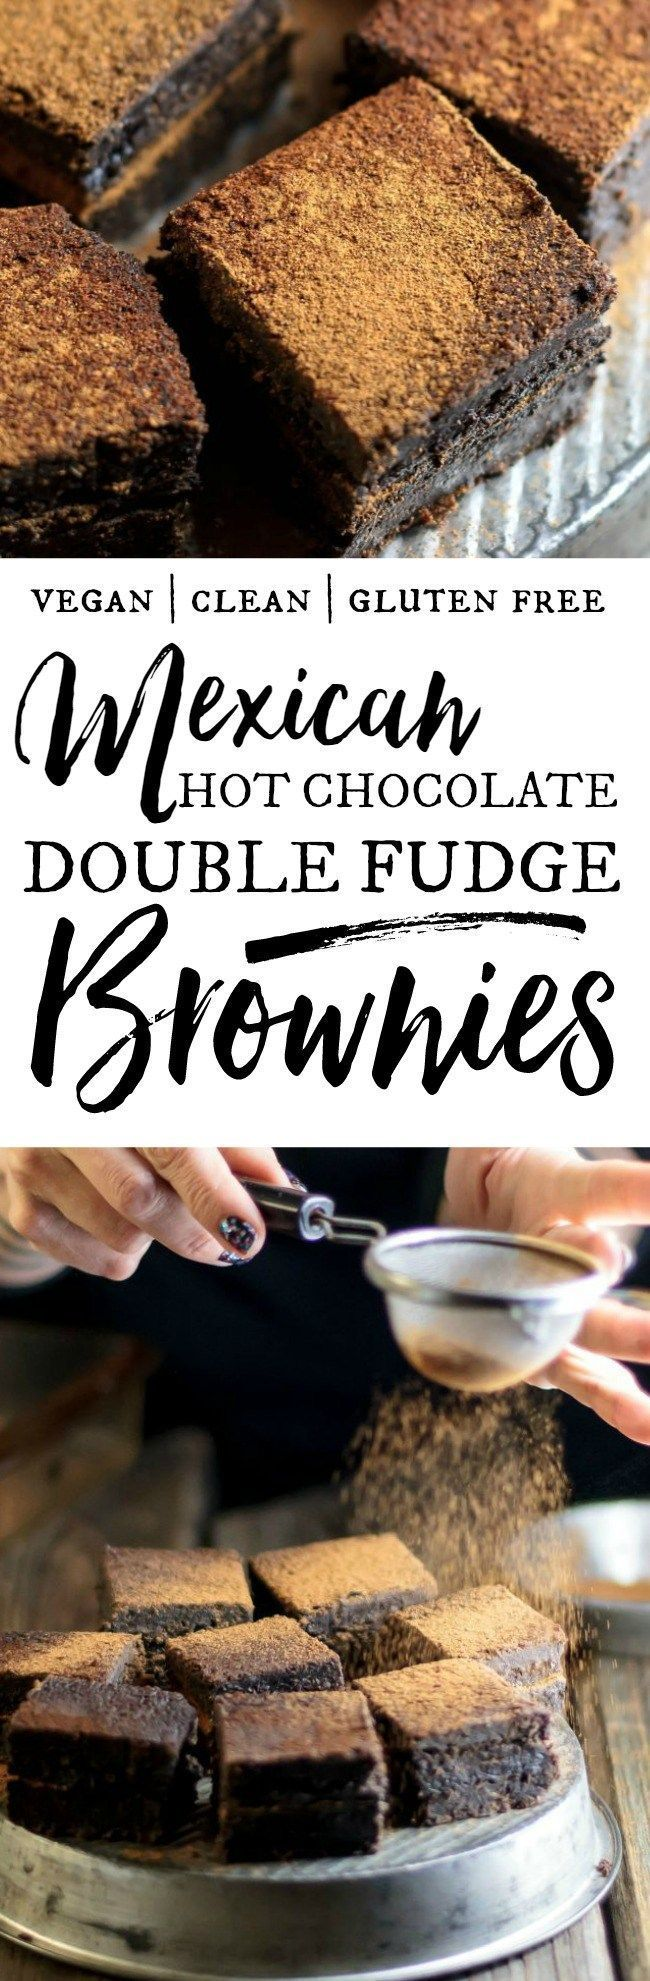 Mexican Hot Chocolate Double Fudge Brownies | https://lomejordelaweb.es/